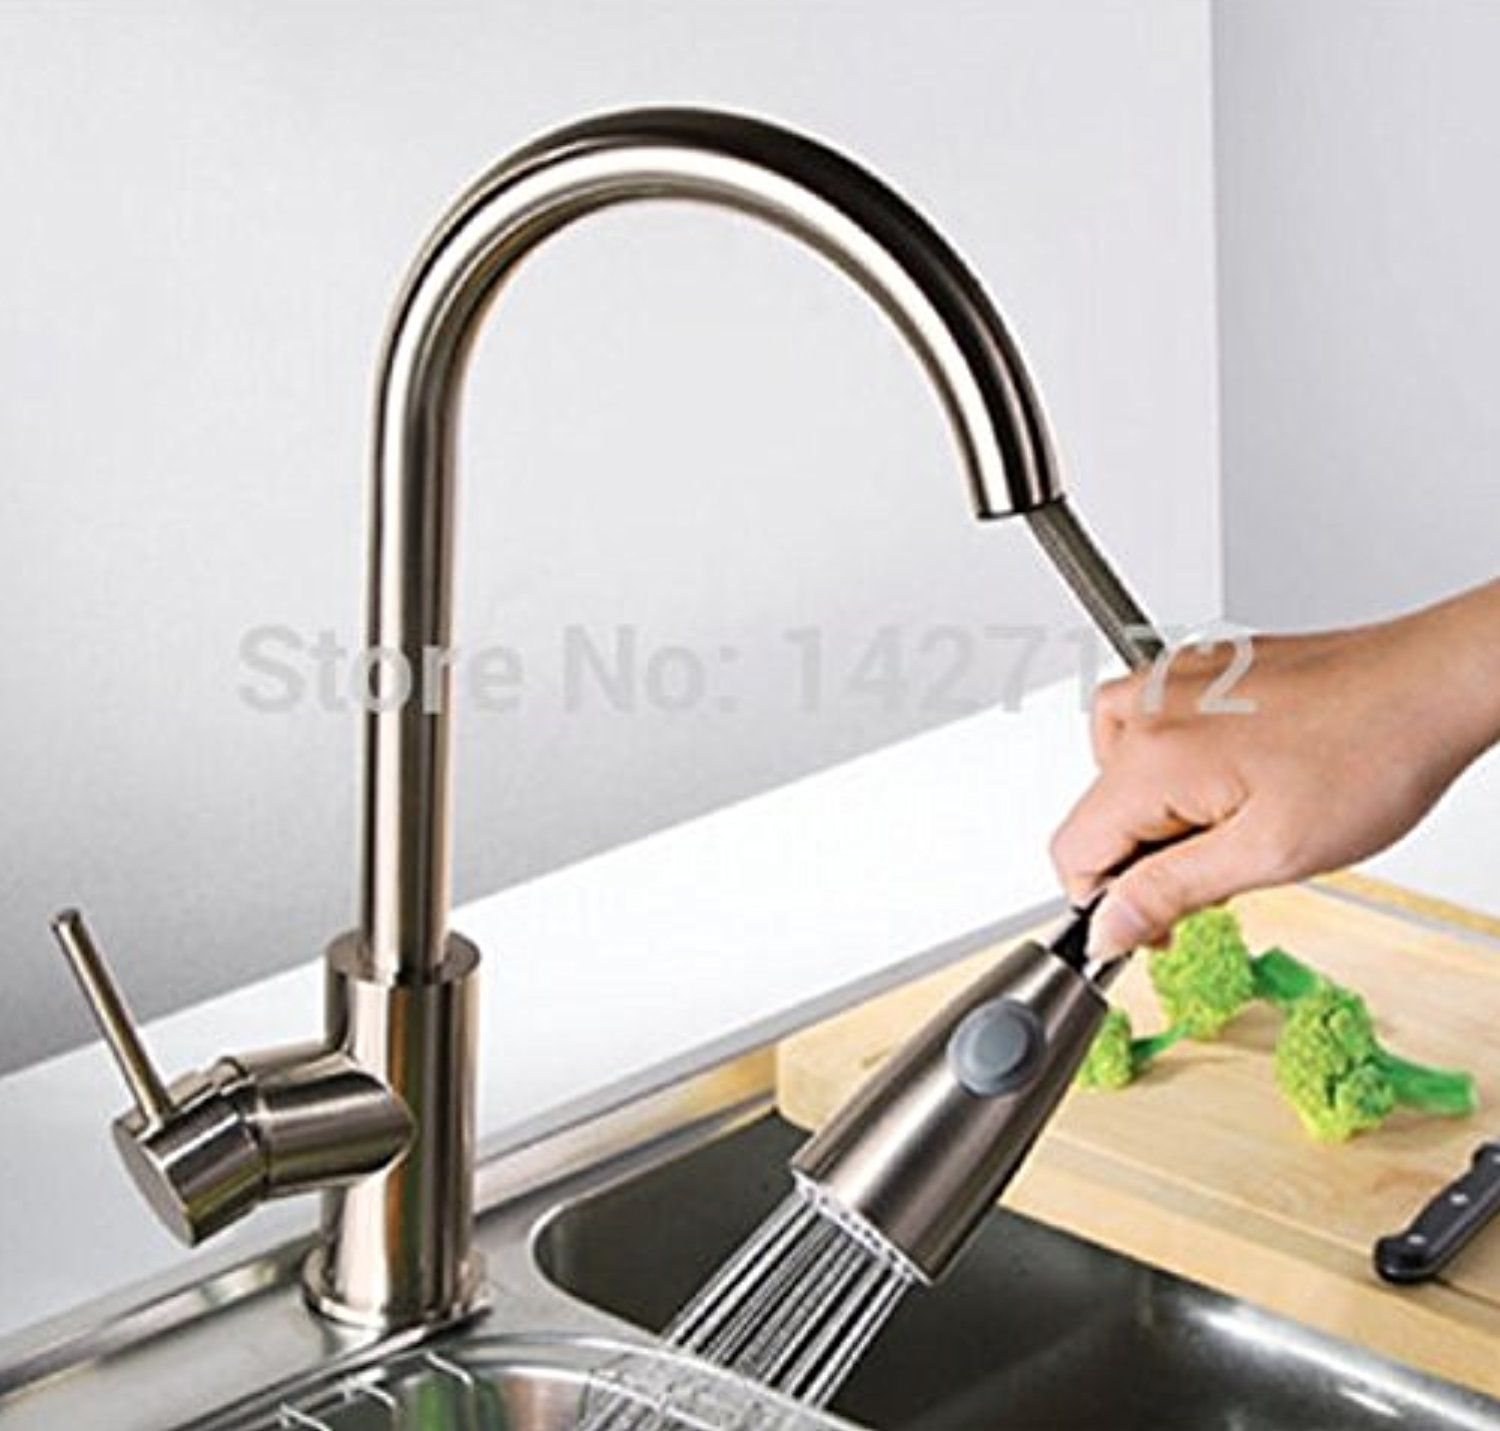 Taps Mixer Swivel Faucet Sink